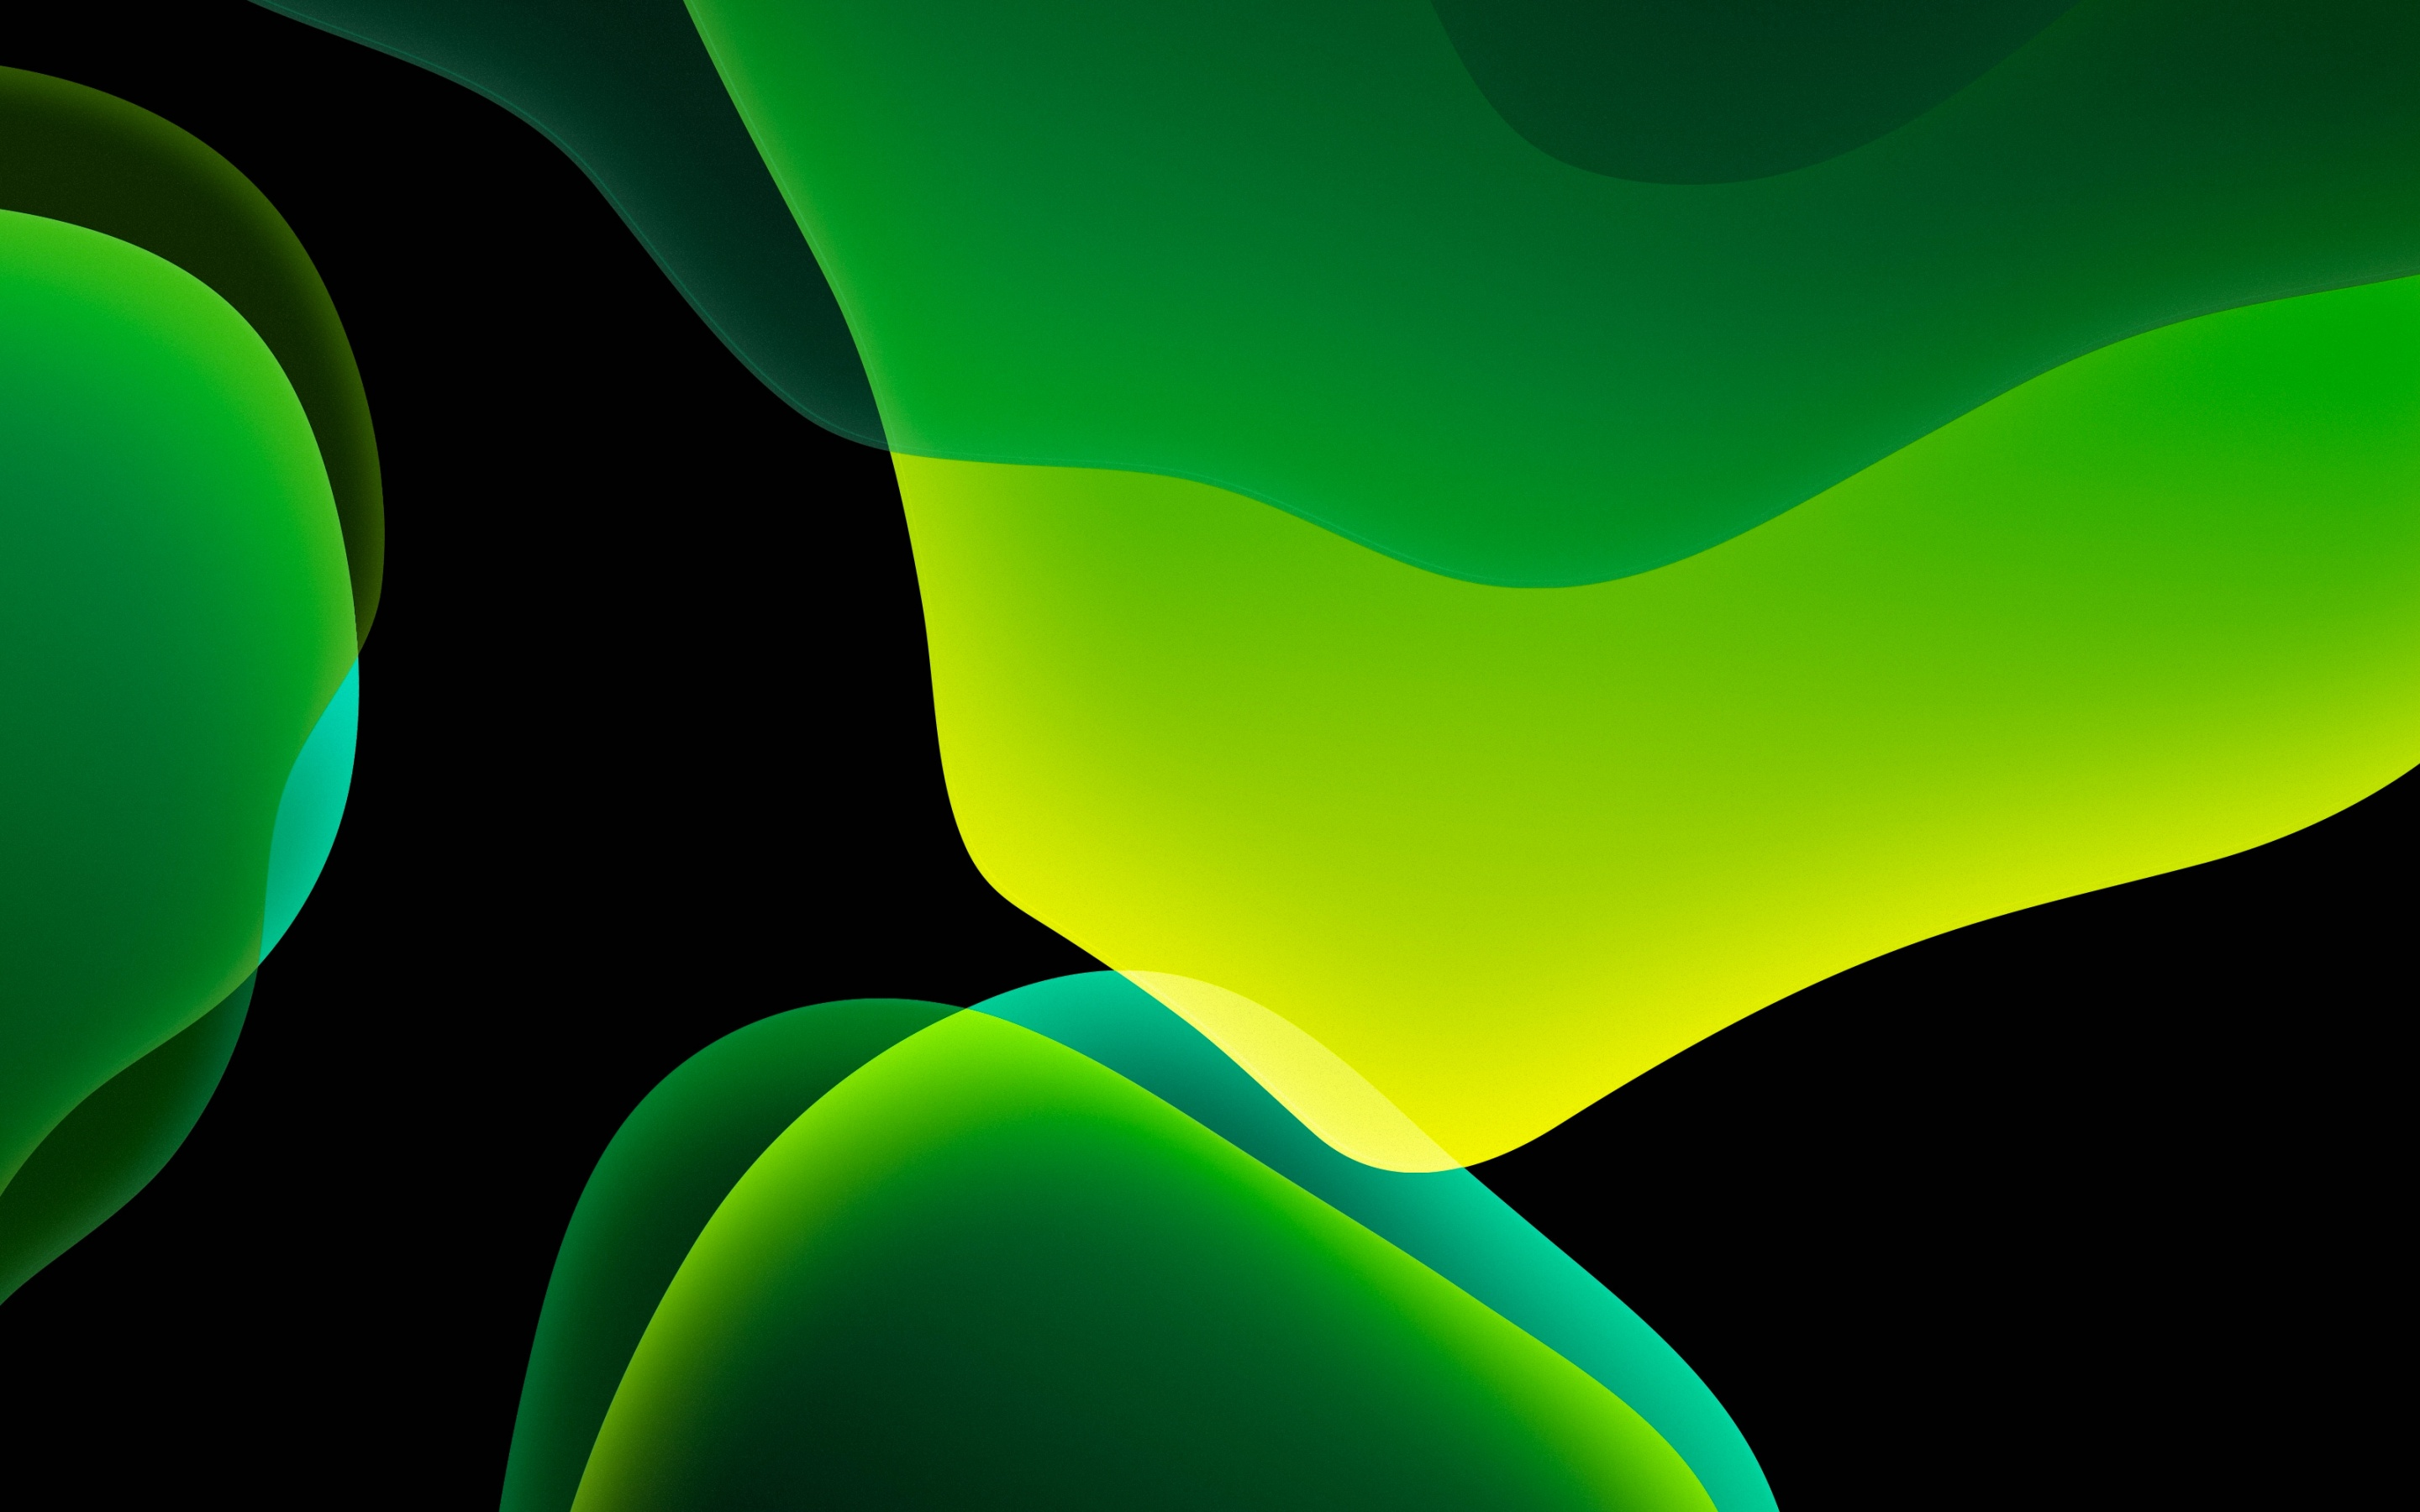 Ios 13 4k Wallpaper Stock Ipados Green Black Background Amoled Ipad Hd Abstract 793